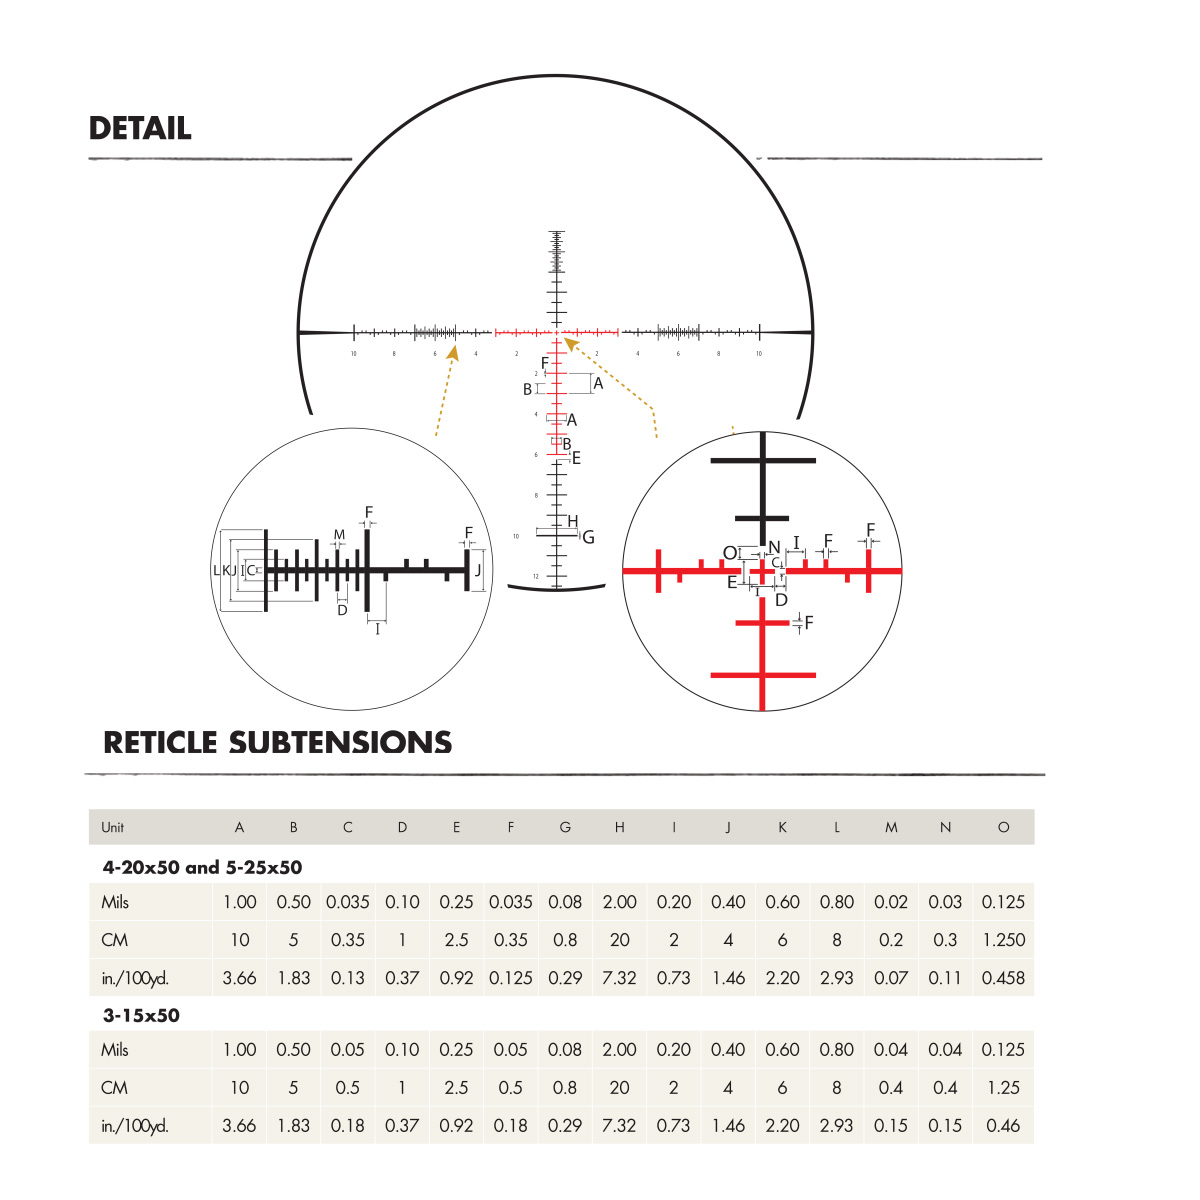 3 examples of riflescope reticles